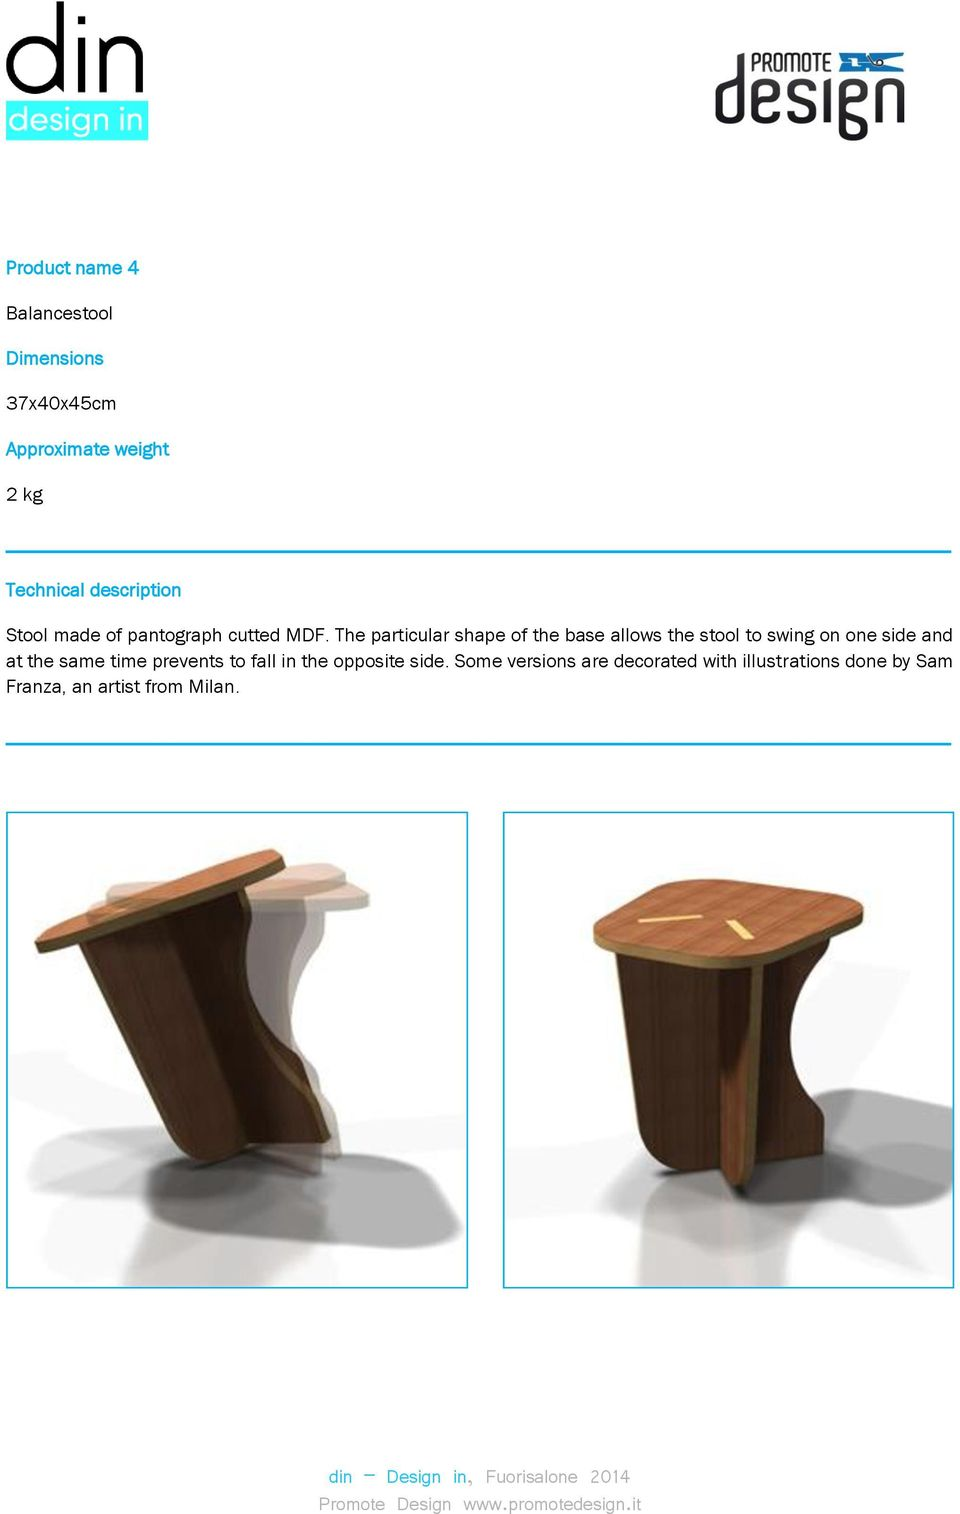 The particular shape of the base allows the stool to swing on one side and at the same